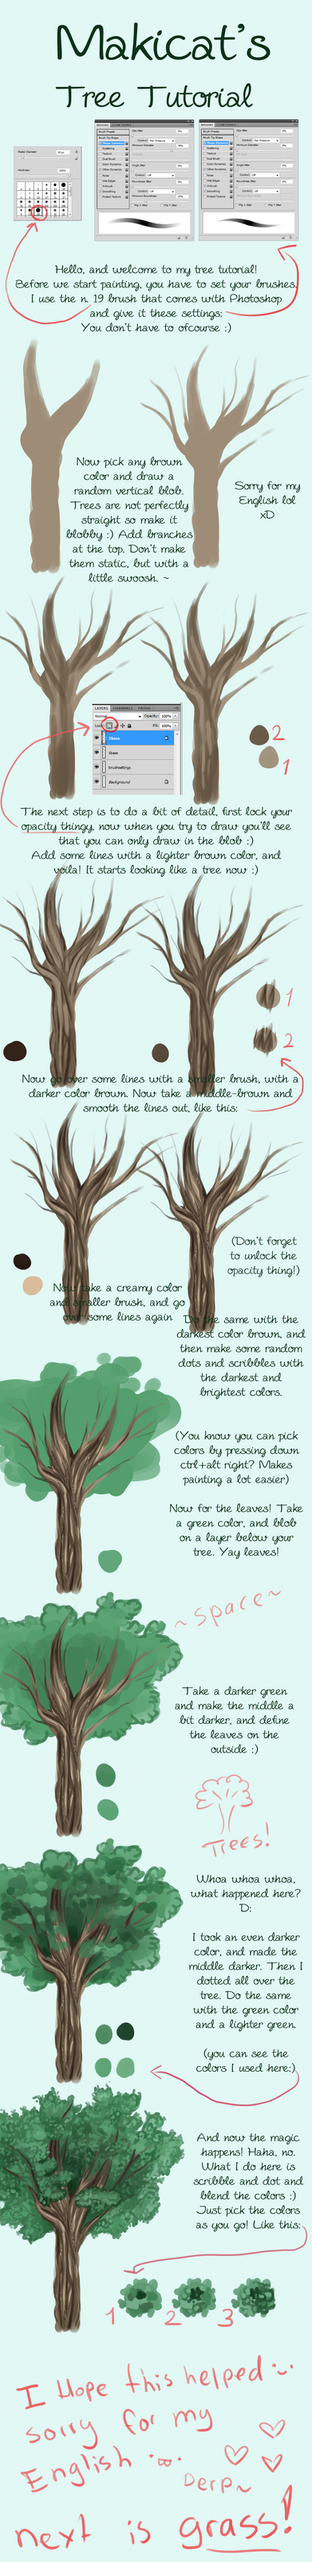 Tree Tutorial by Makirou